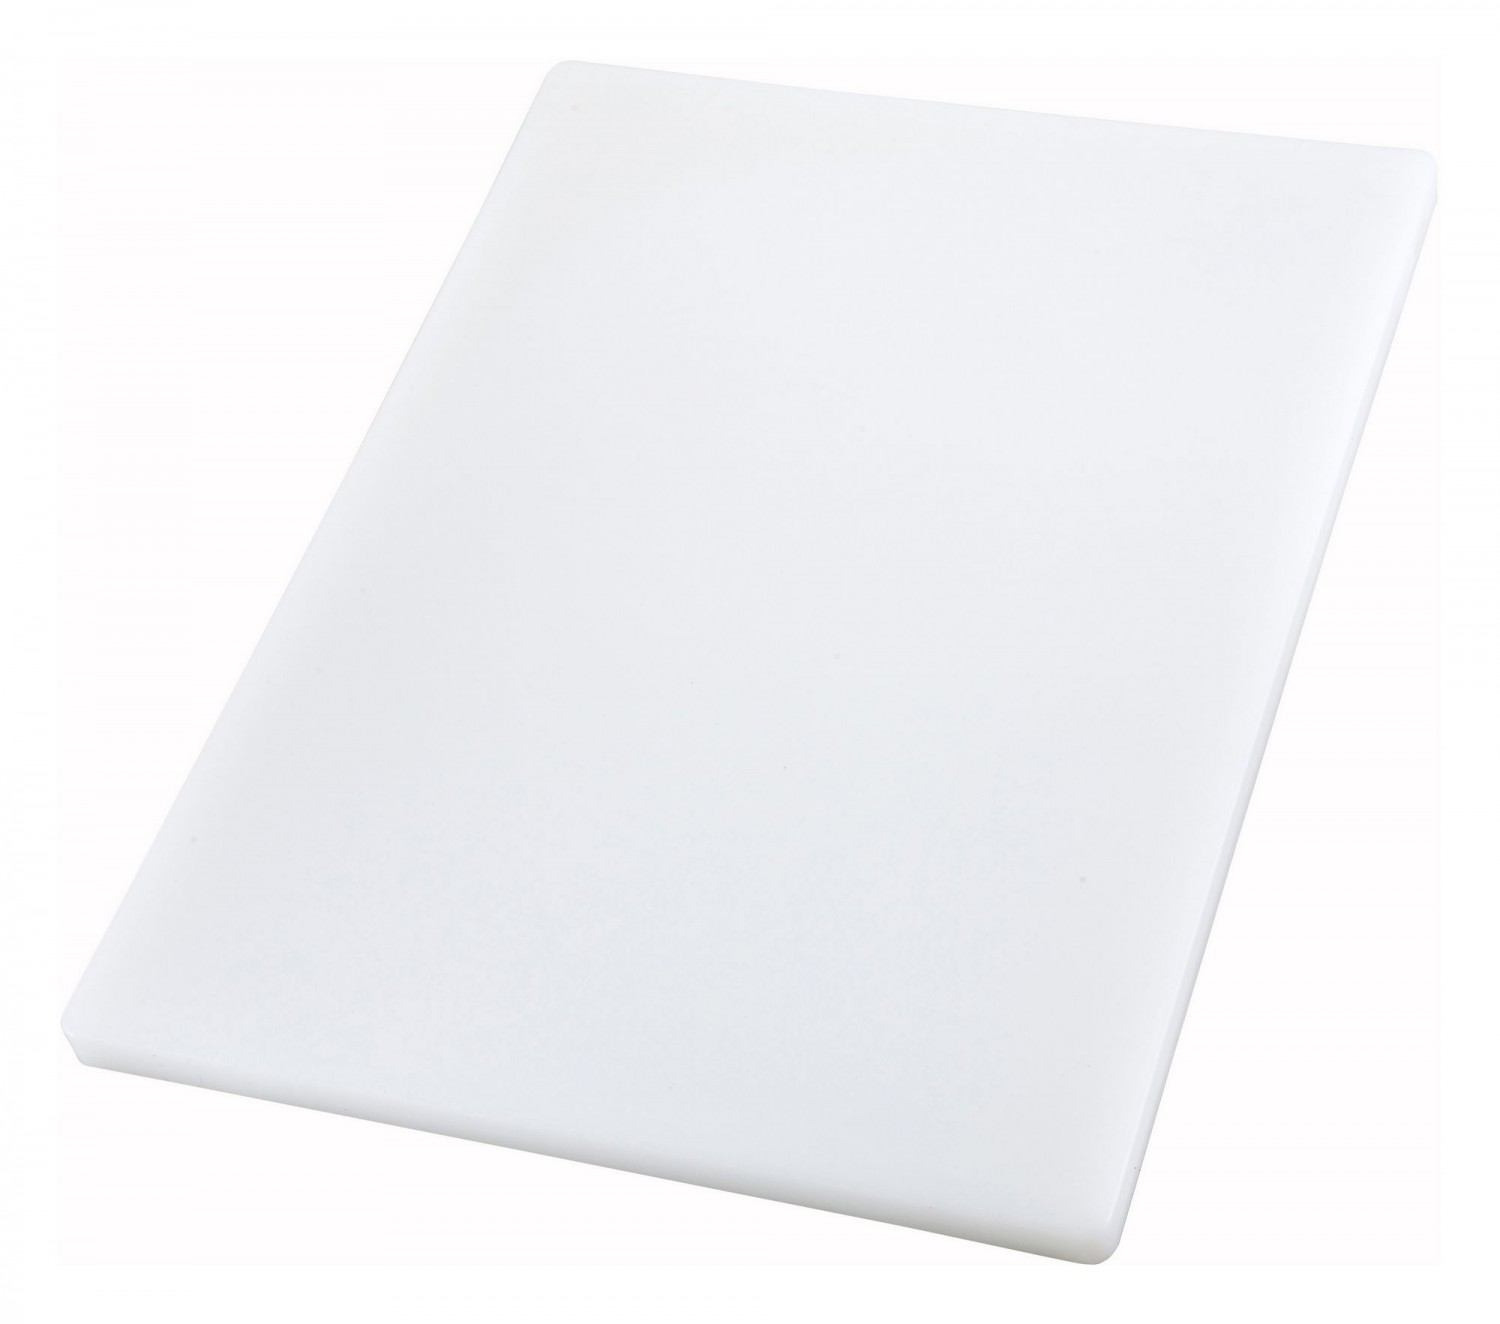 "Winco CBXH-1218 Thick White Plastic Cutting Board 12"" x 18"" x 1"""